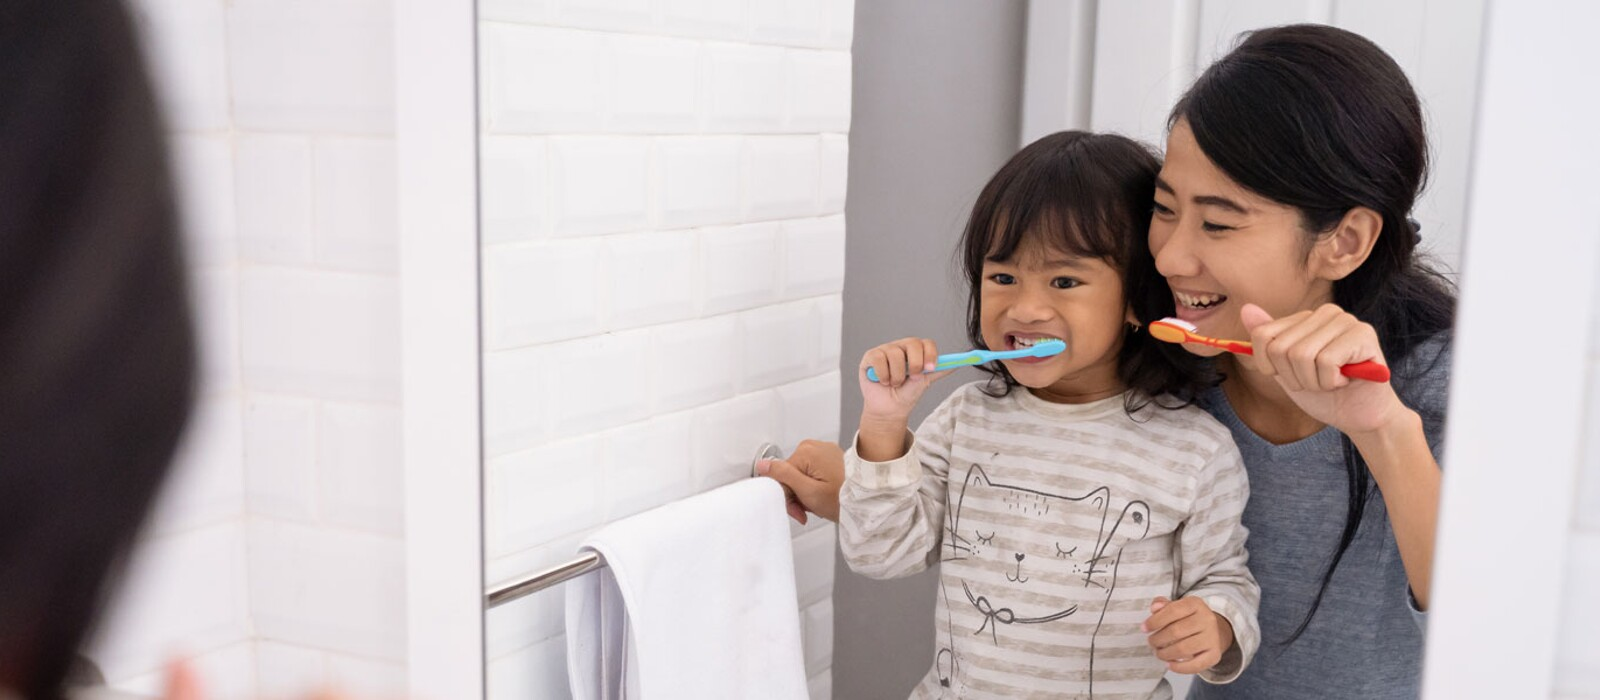 What to do when your child hates toothbrush time